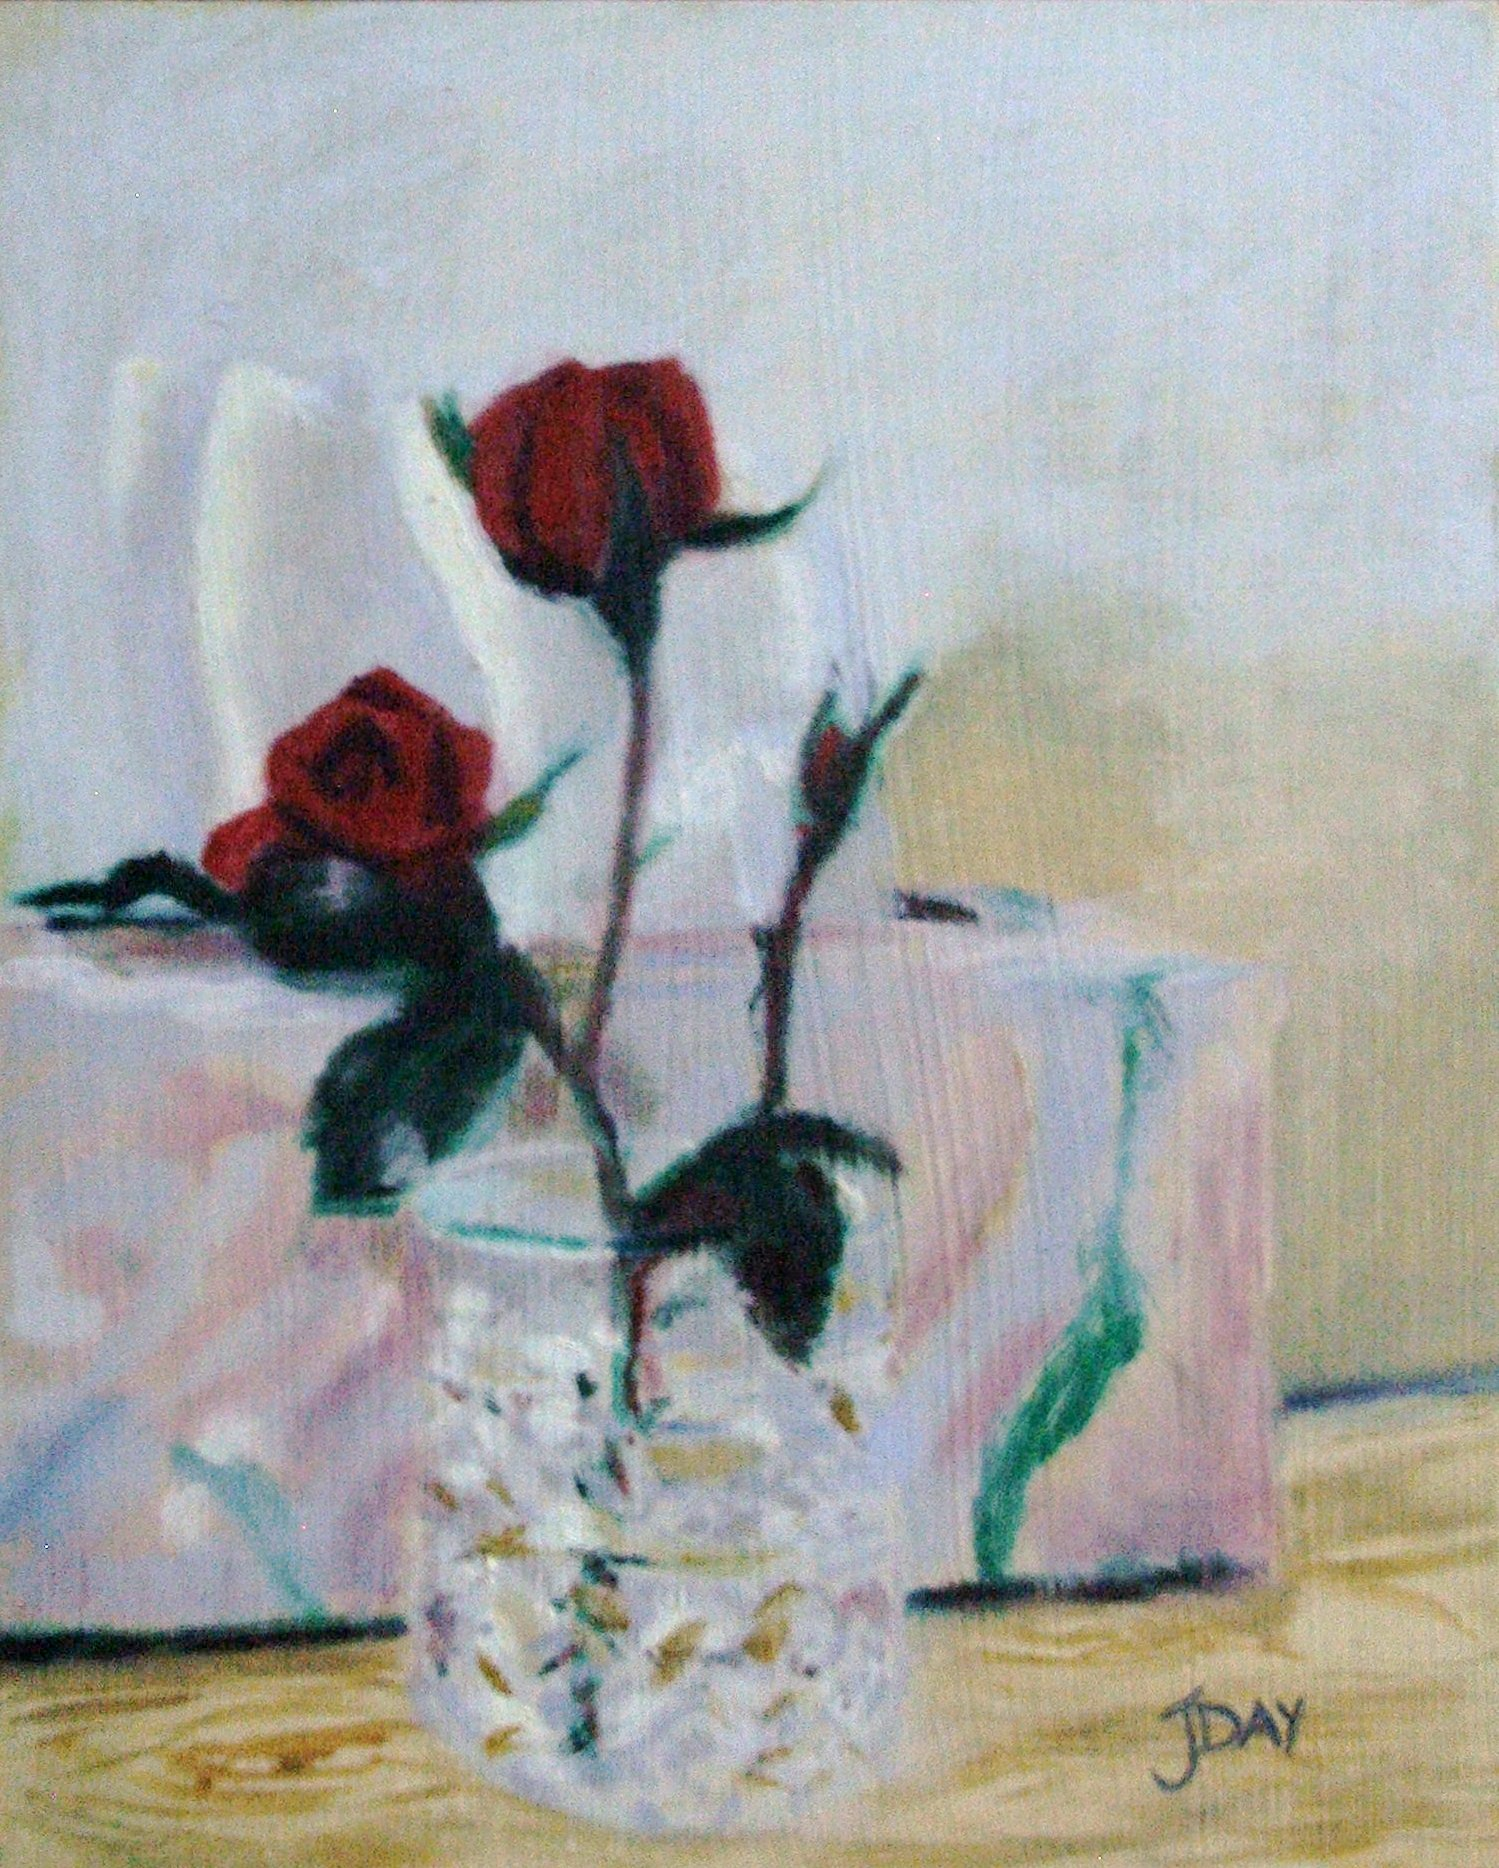 Not available-What Inspired Me To Paint A Rose In A Glass With A Tissue Box Still Life In Genesis Heat Set Oils?